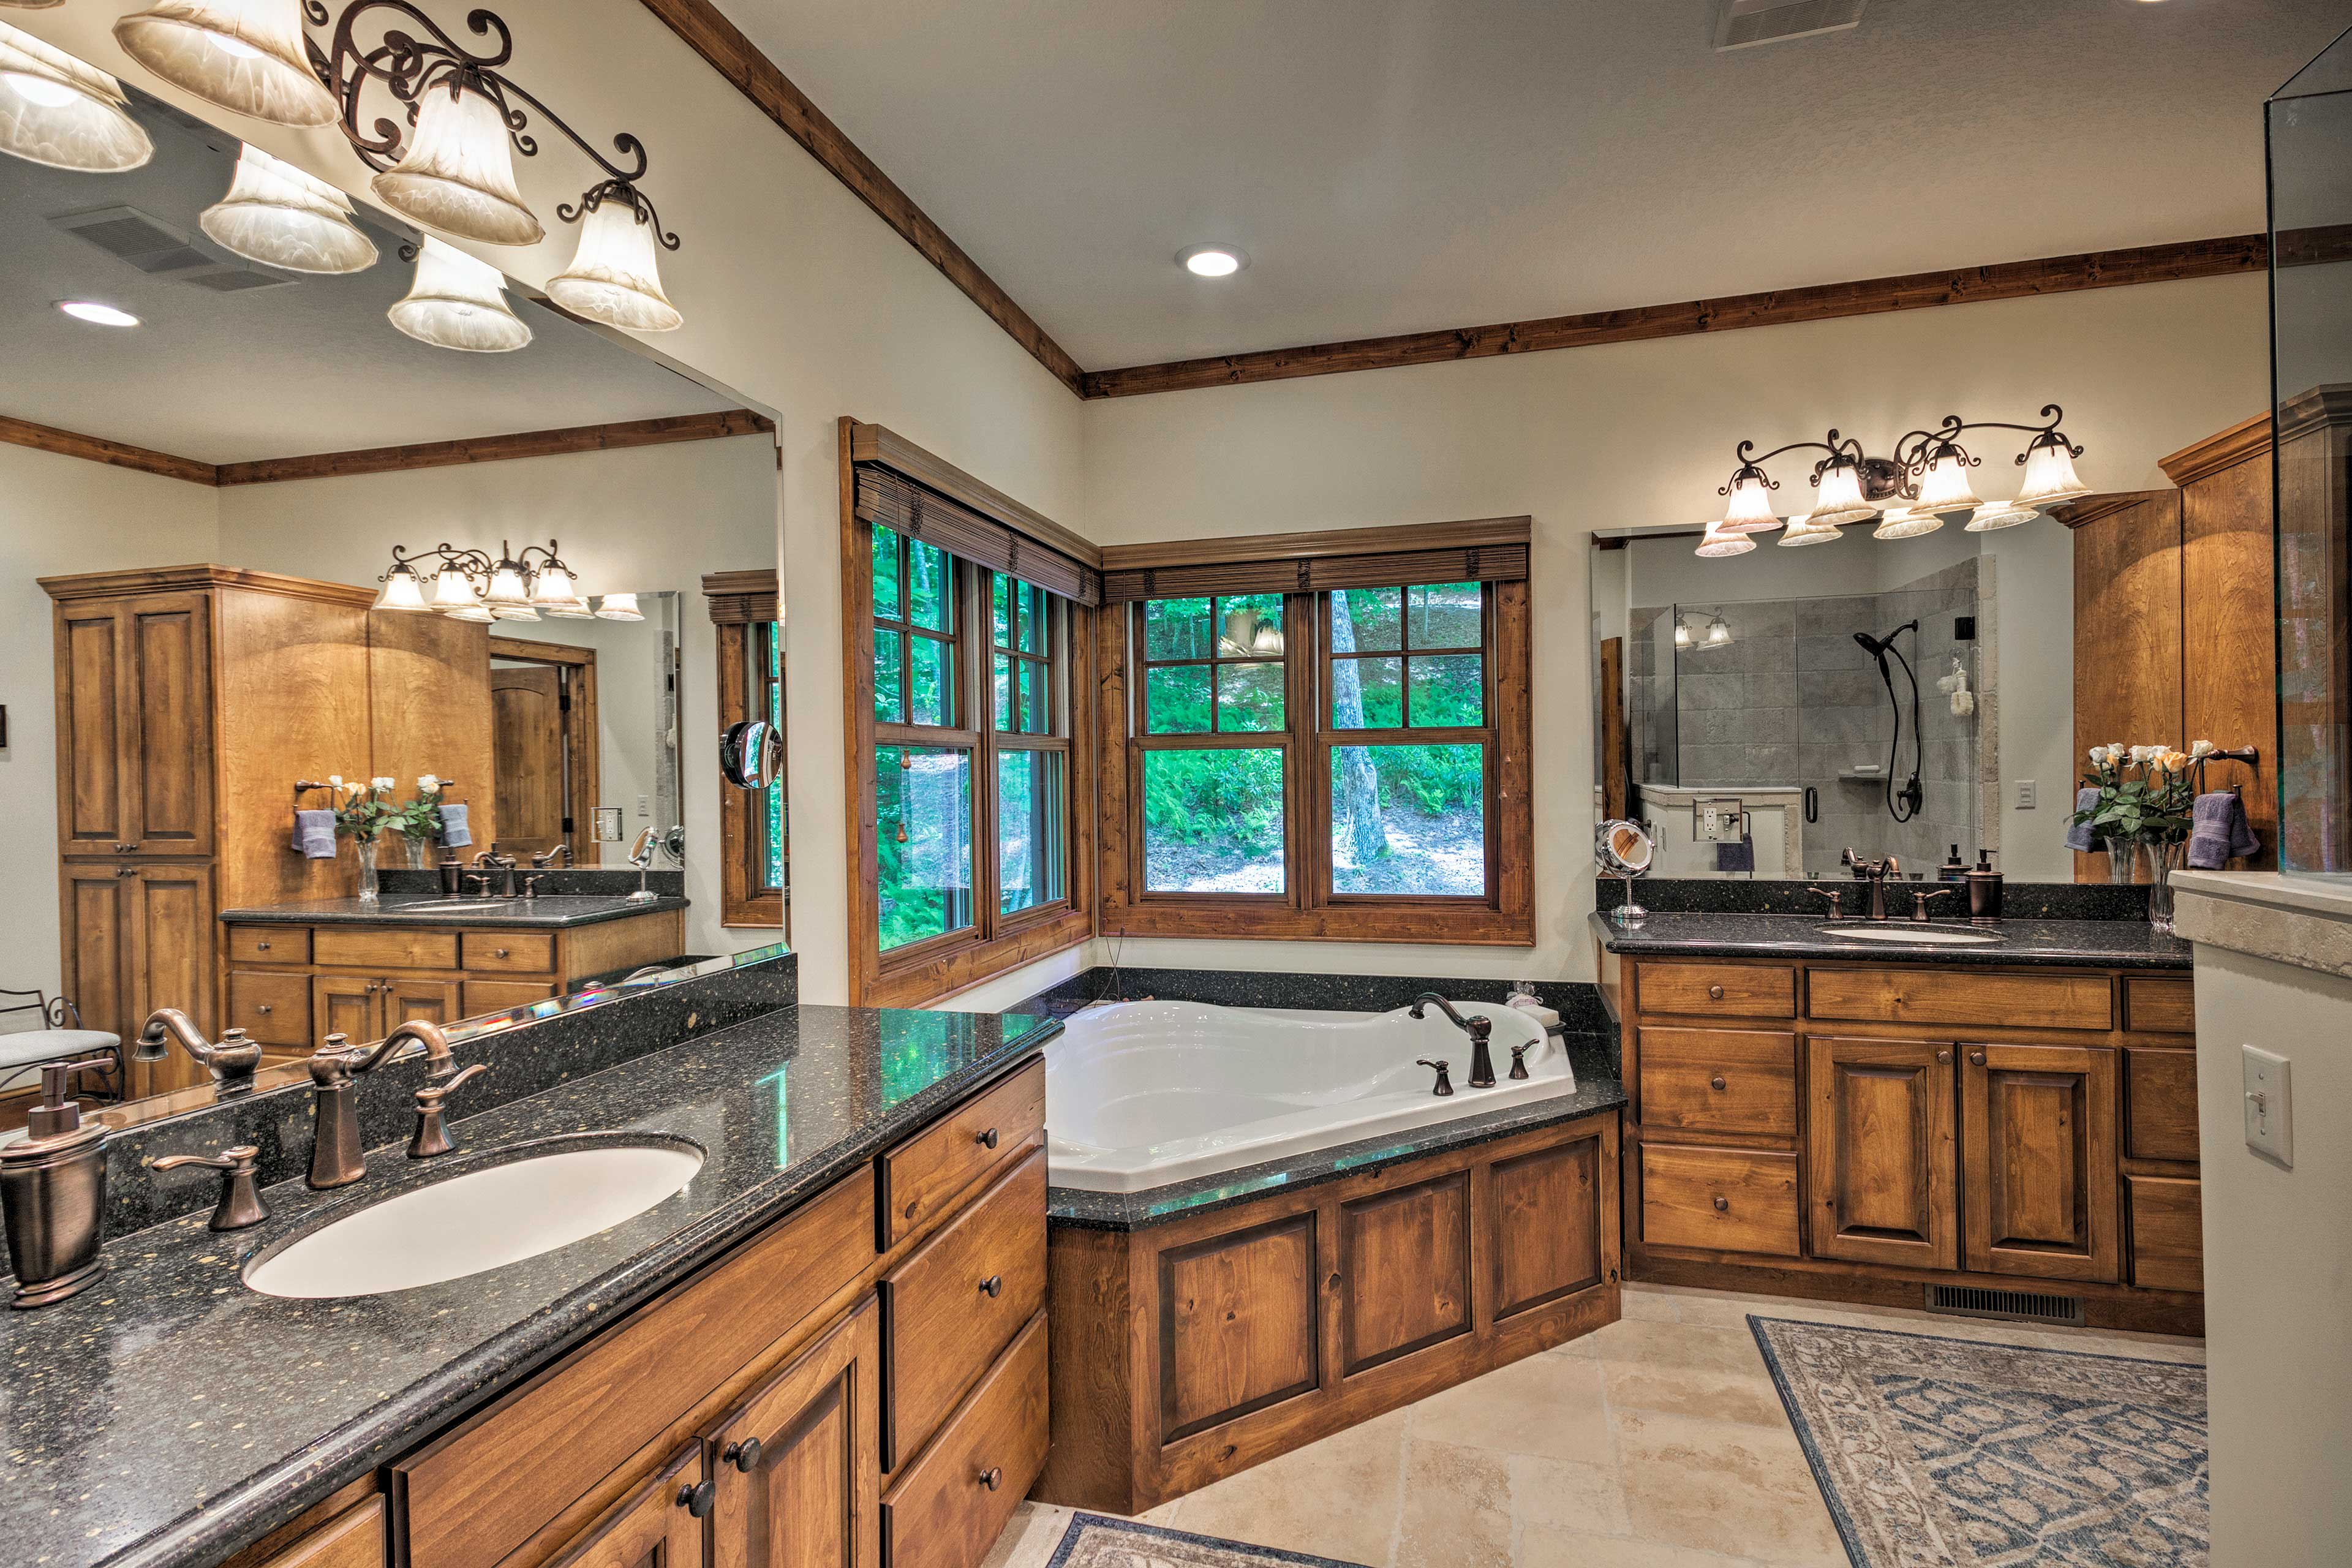 The en-suite bathroom boasts a walk-in shower and large soaking tub.